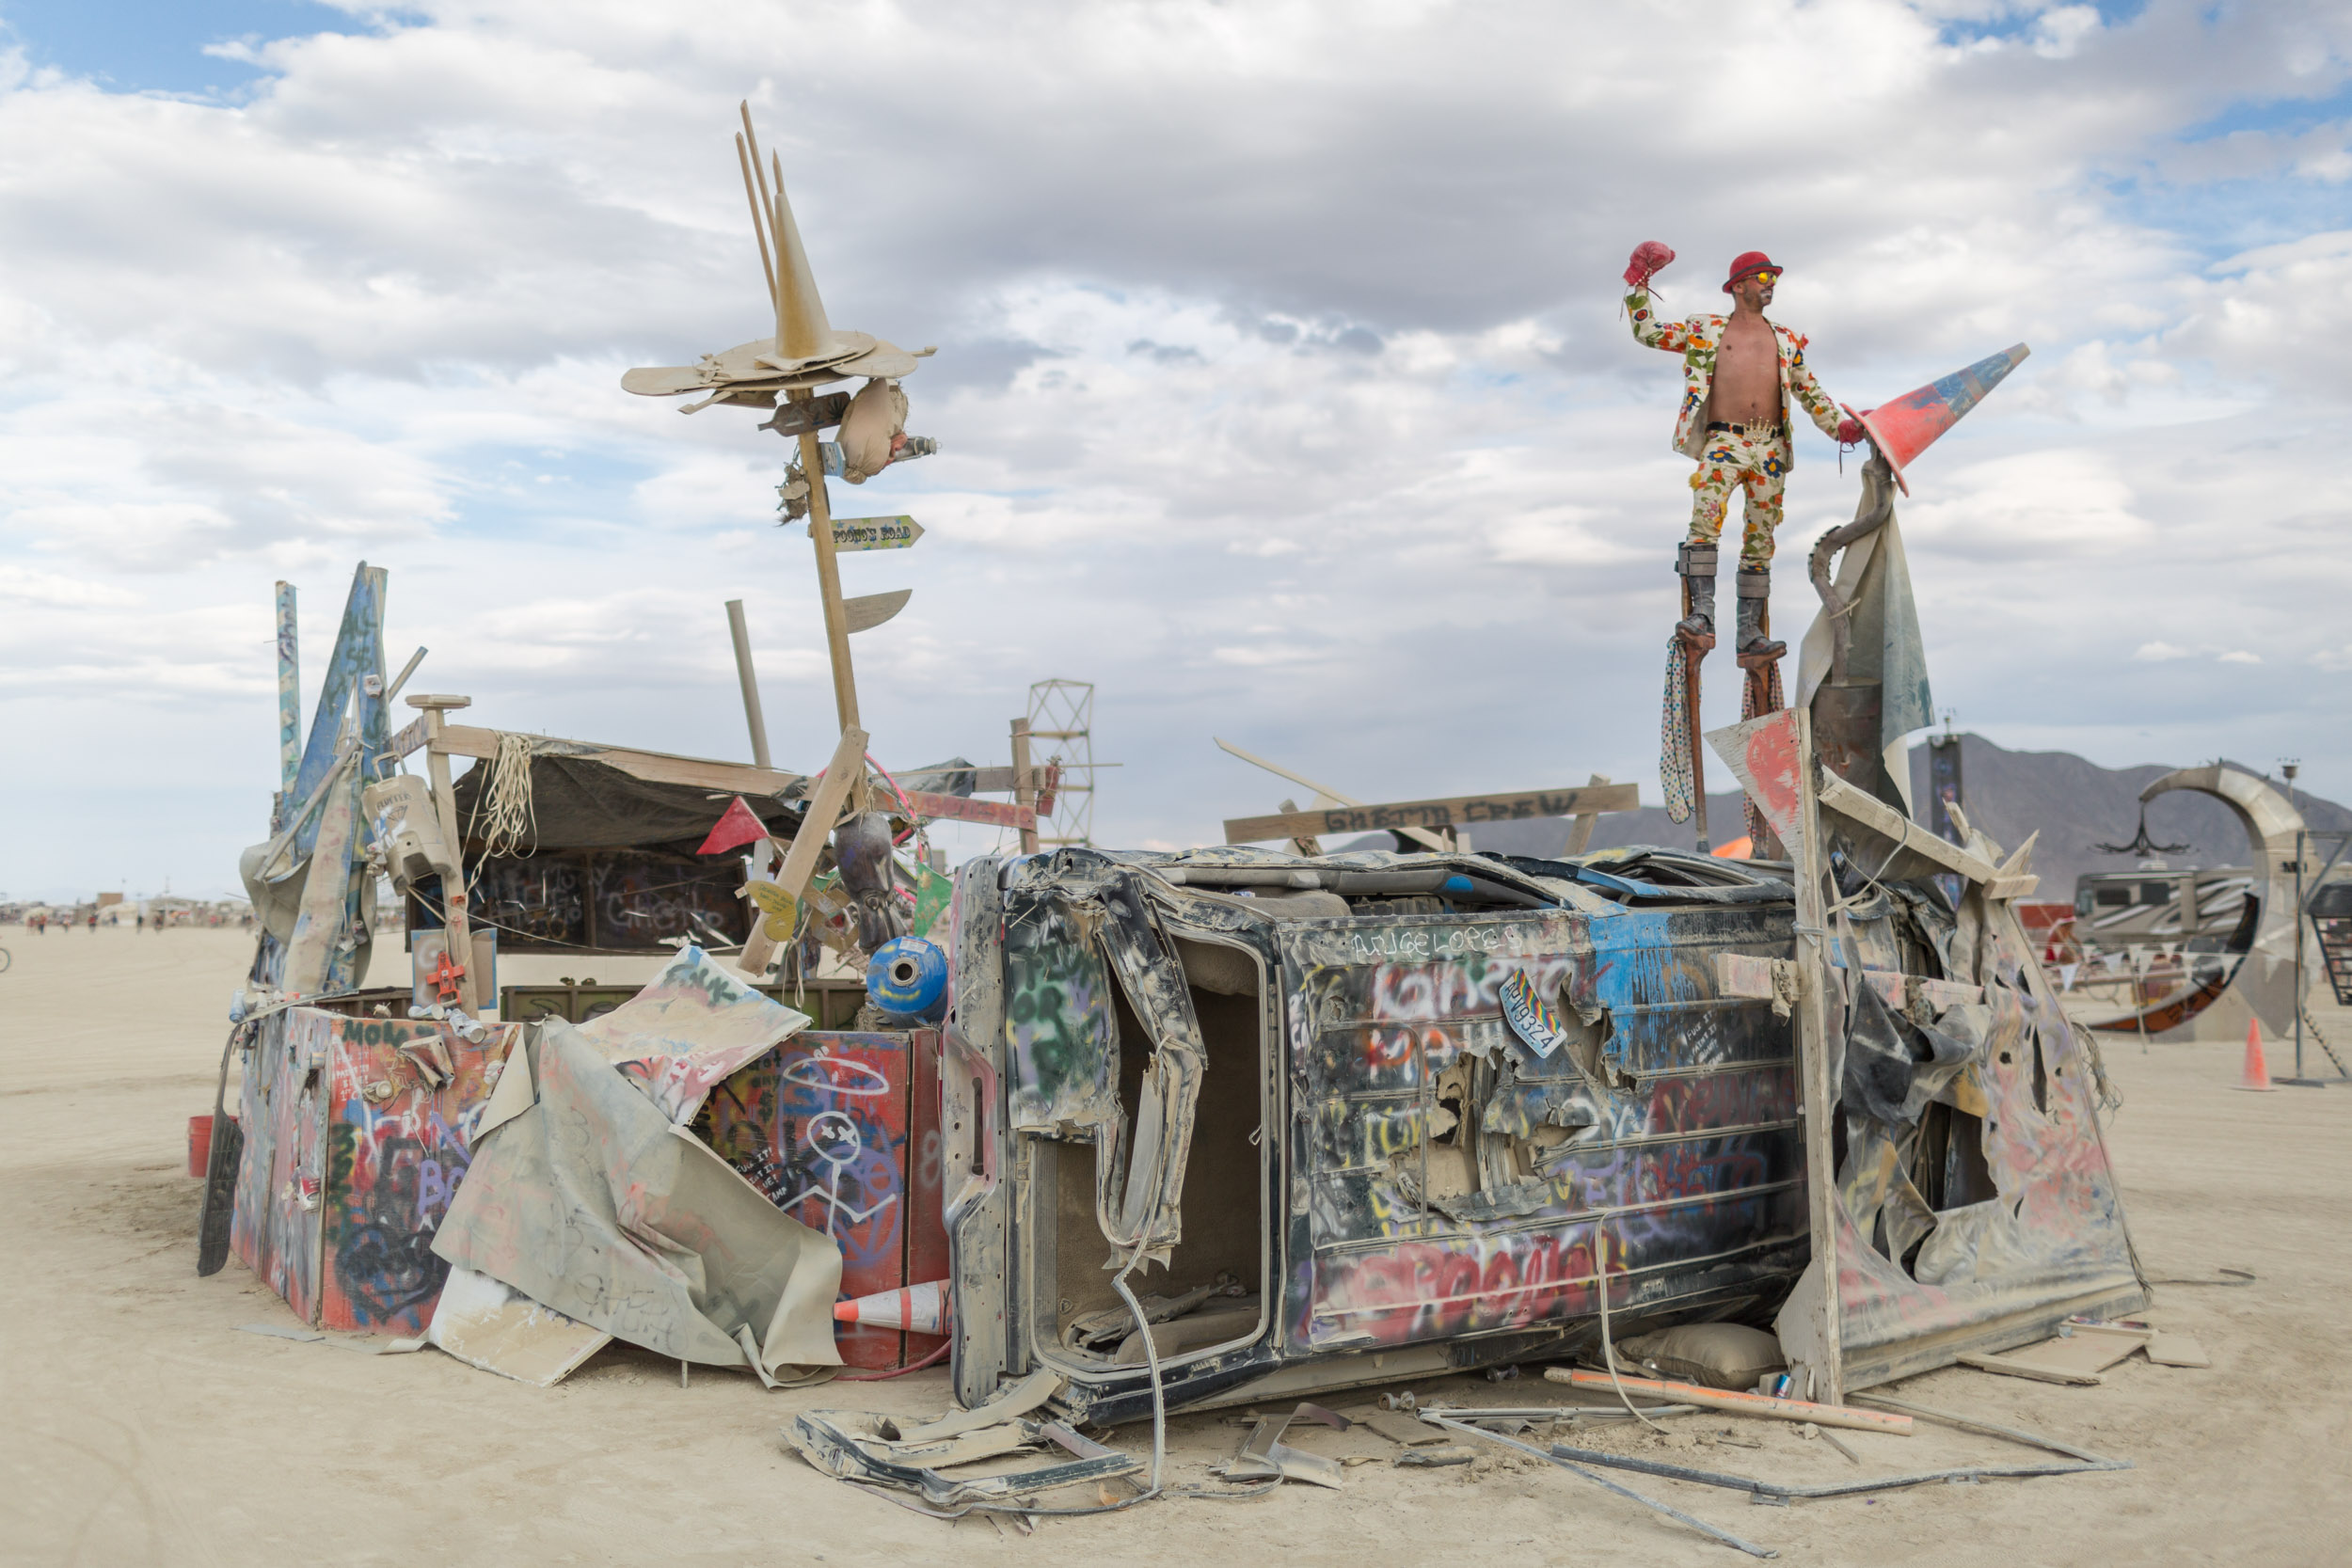 20160903_BurningMan16_7U6A9353